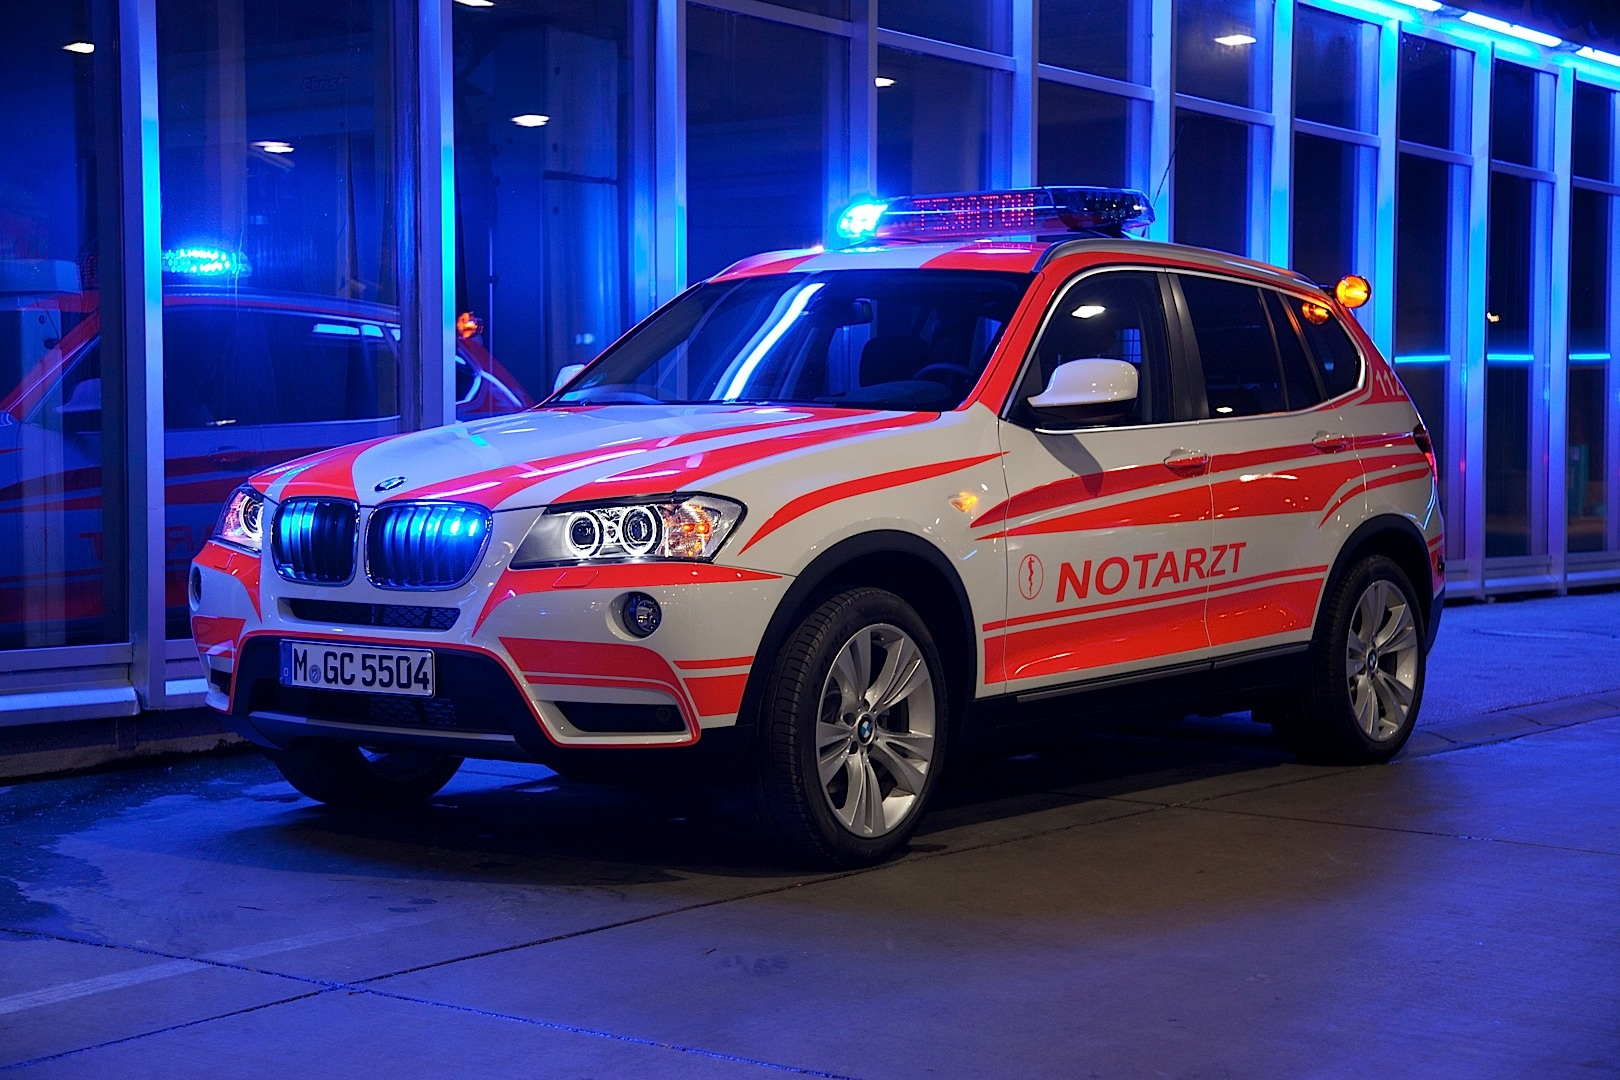 Bmw Showcases 2013 Emergency Vehicles At The Rettmobil Event Autoevolution